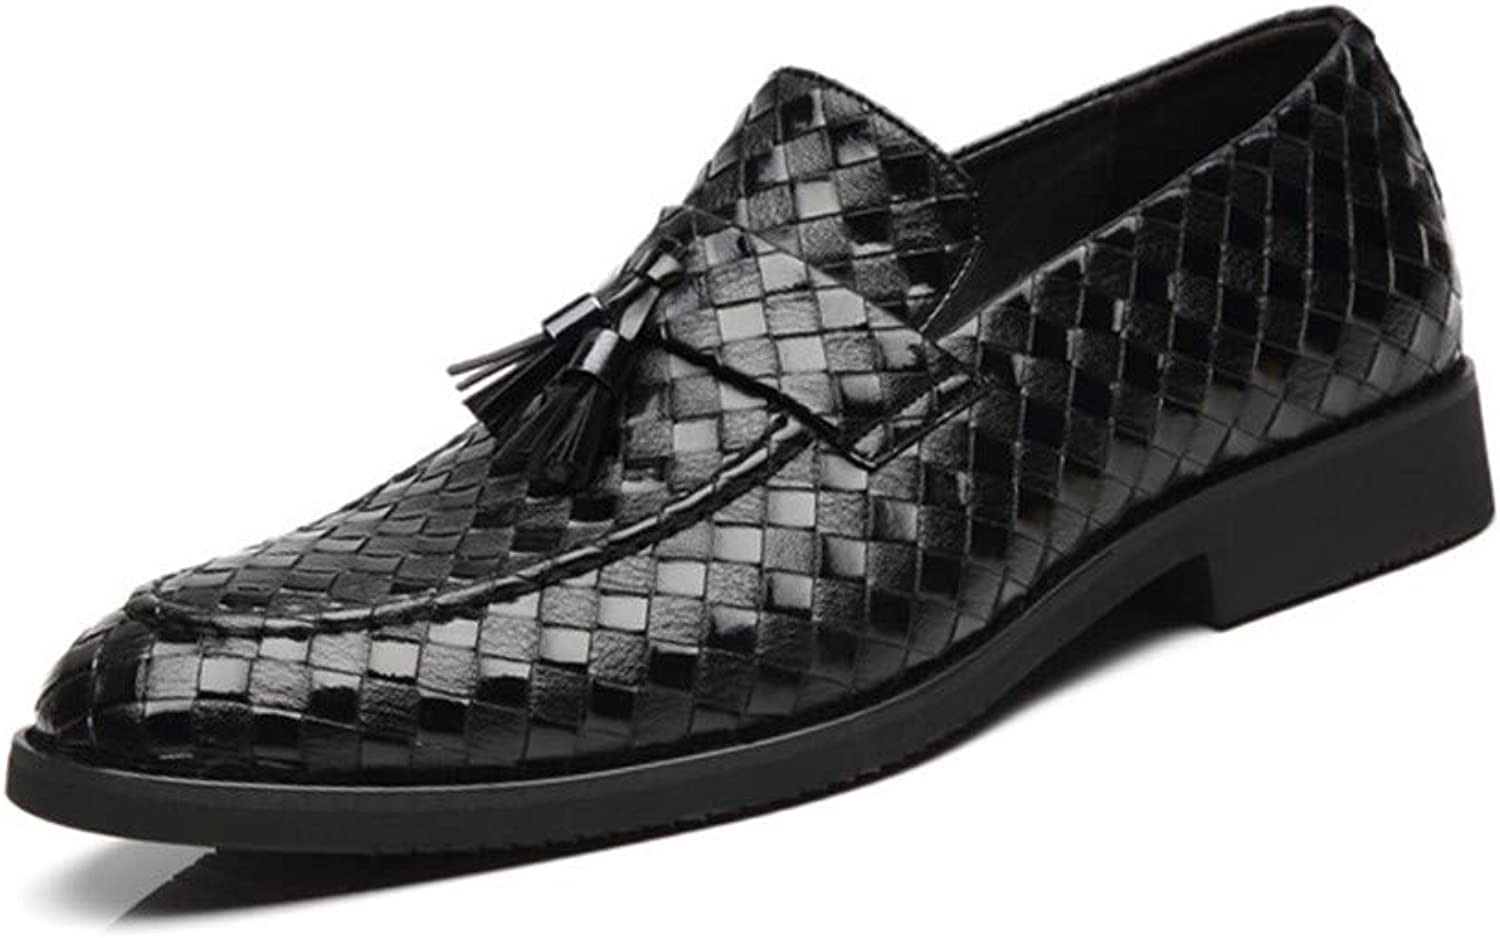 AADDIN Leather shoes Tassel Braided Pattern shoes Slip-On Men'S Business shoes Formal Dress shoes